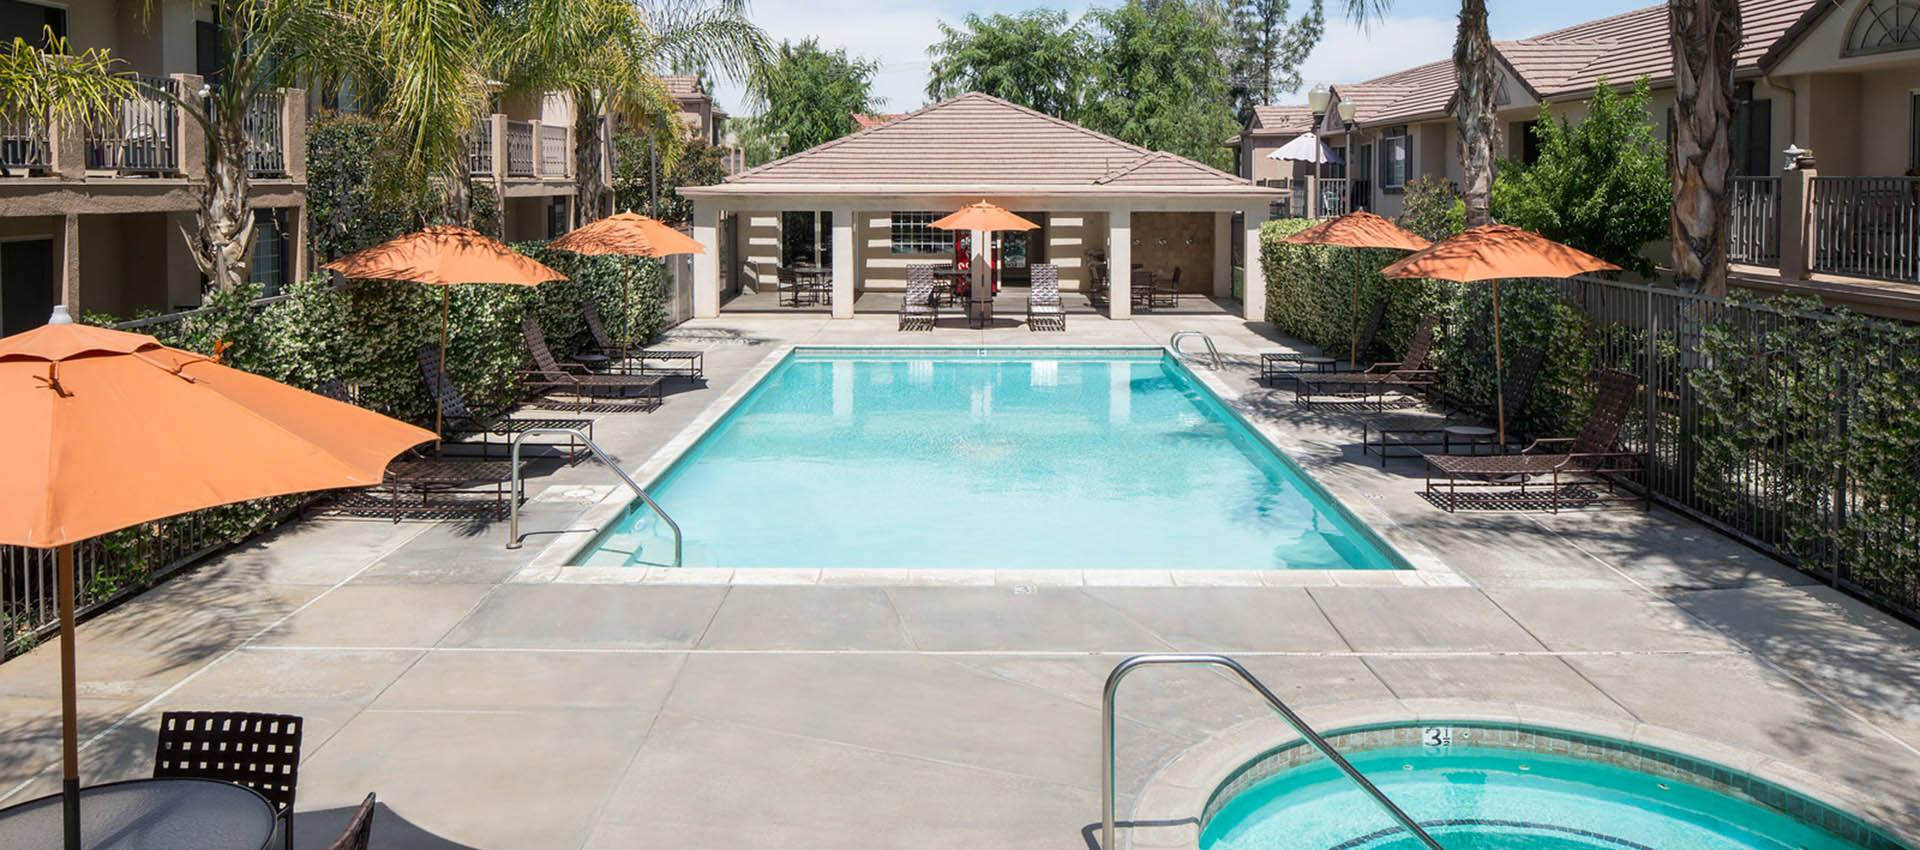 Spa And Pool Area at Cypress Villas Apartment Homes in Redlands, CA